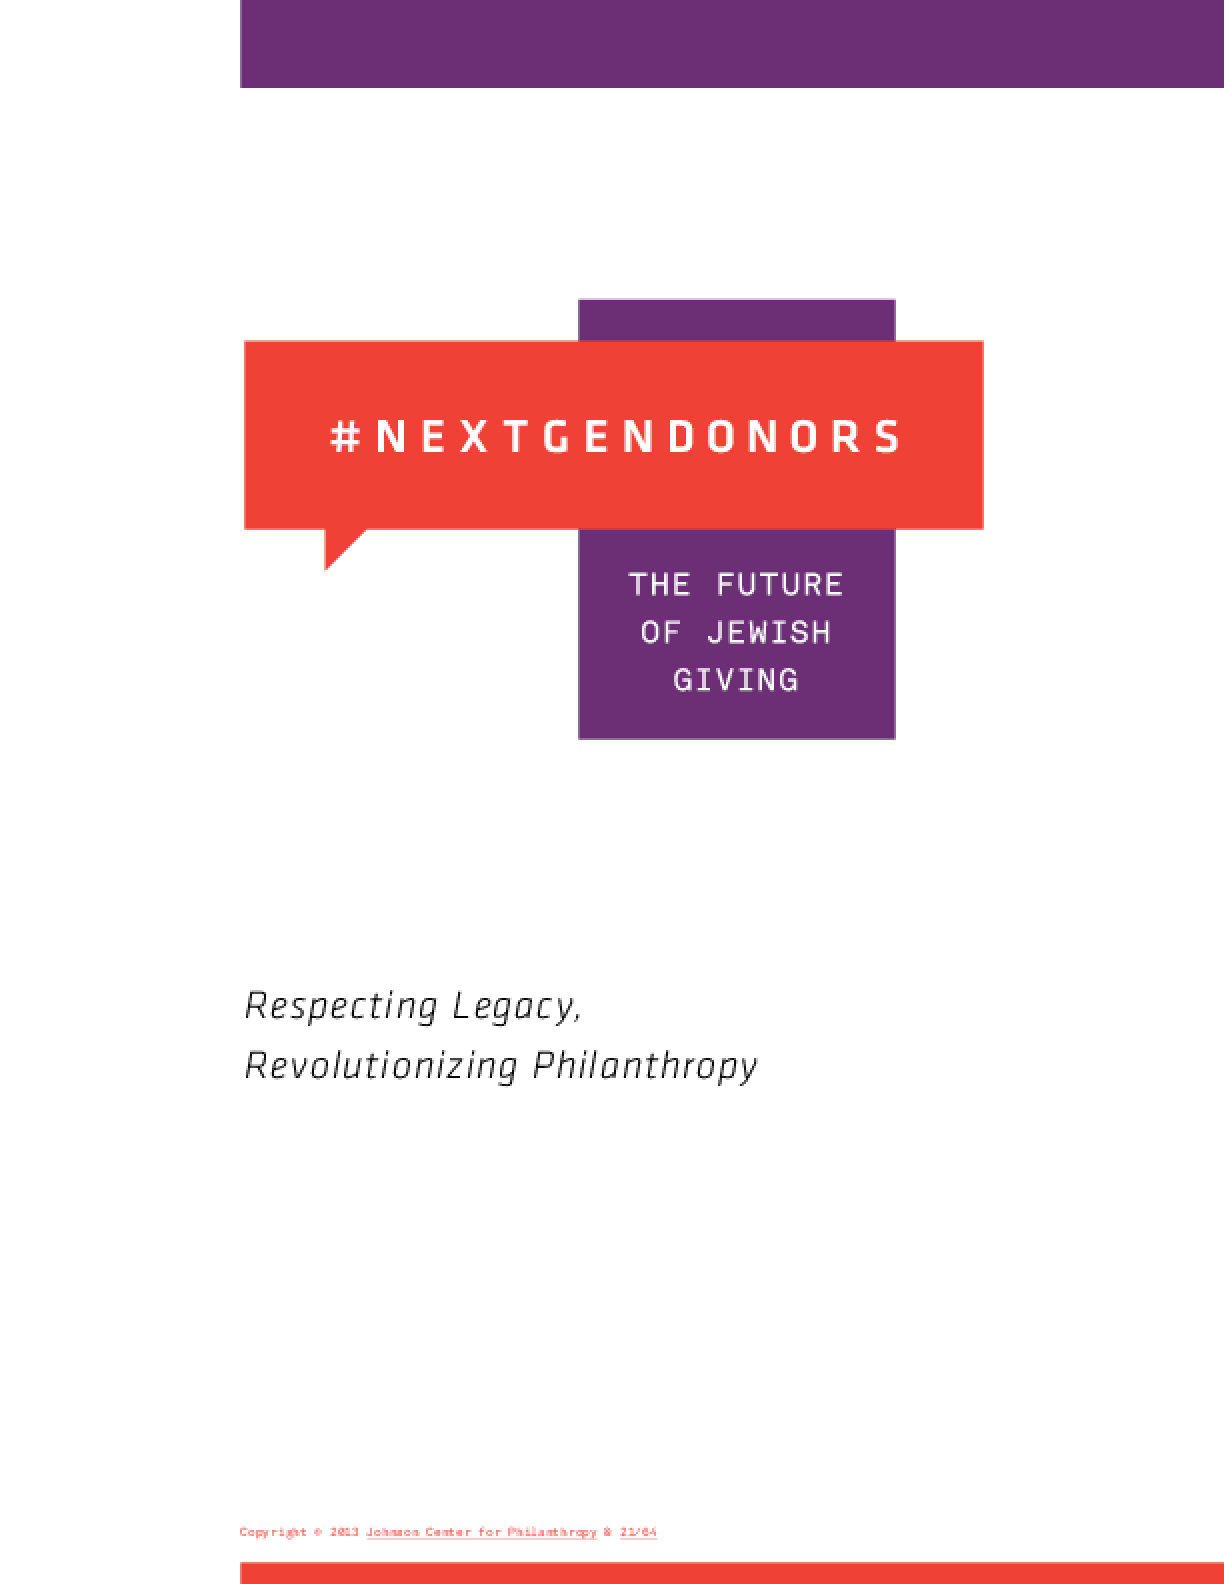 #NextGenDonors: the future of Jewish giving